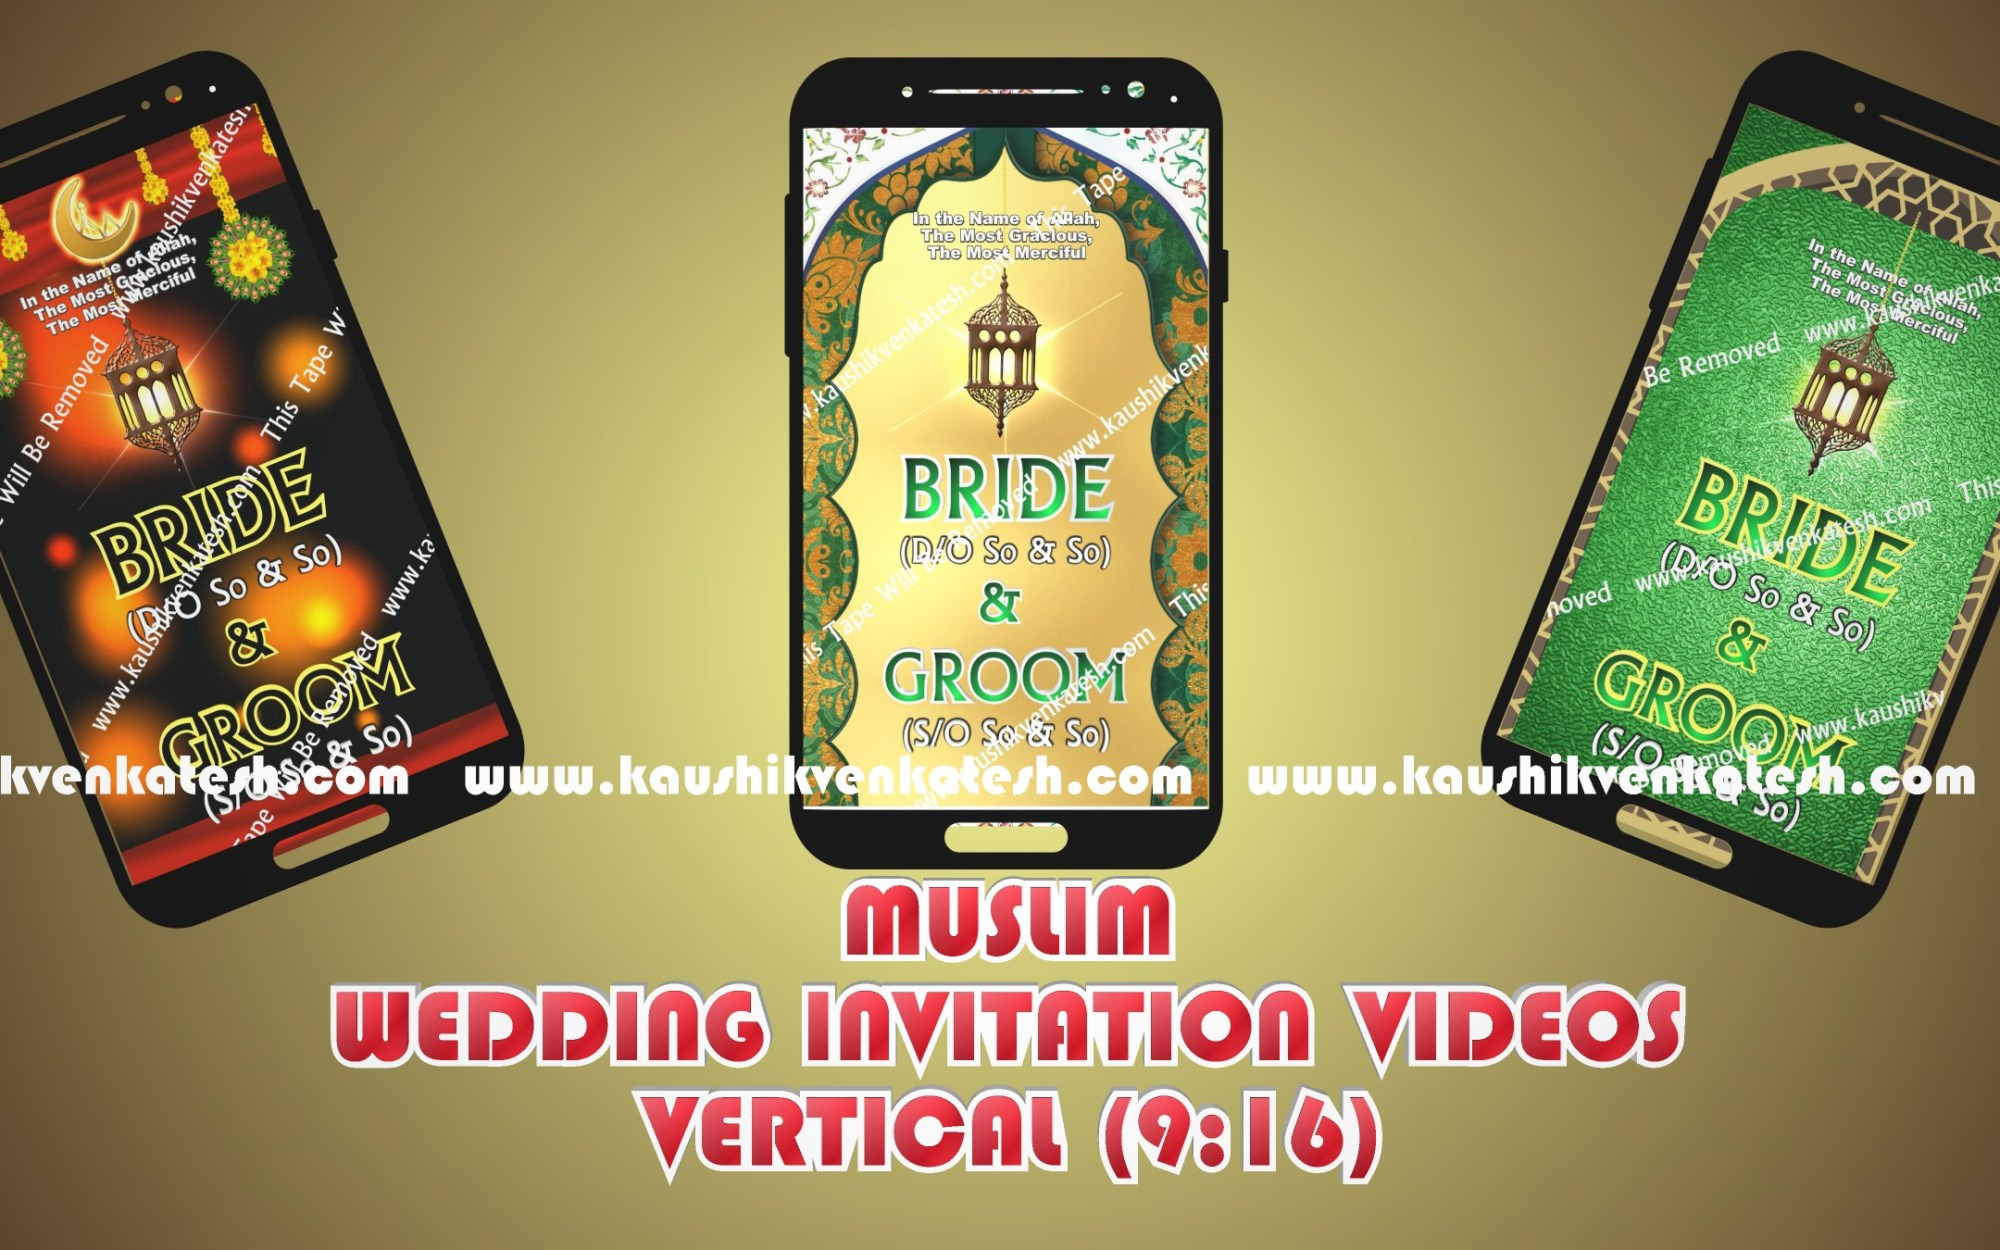 Vertical videos of Muslim Wedding Invitation designed specifically for Mobile.